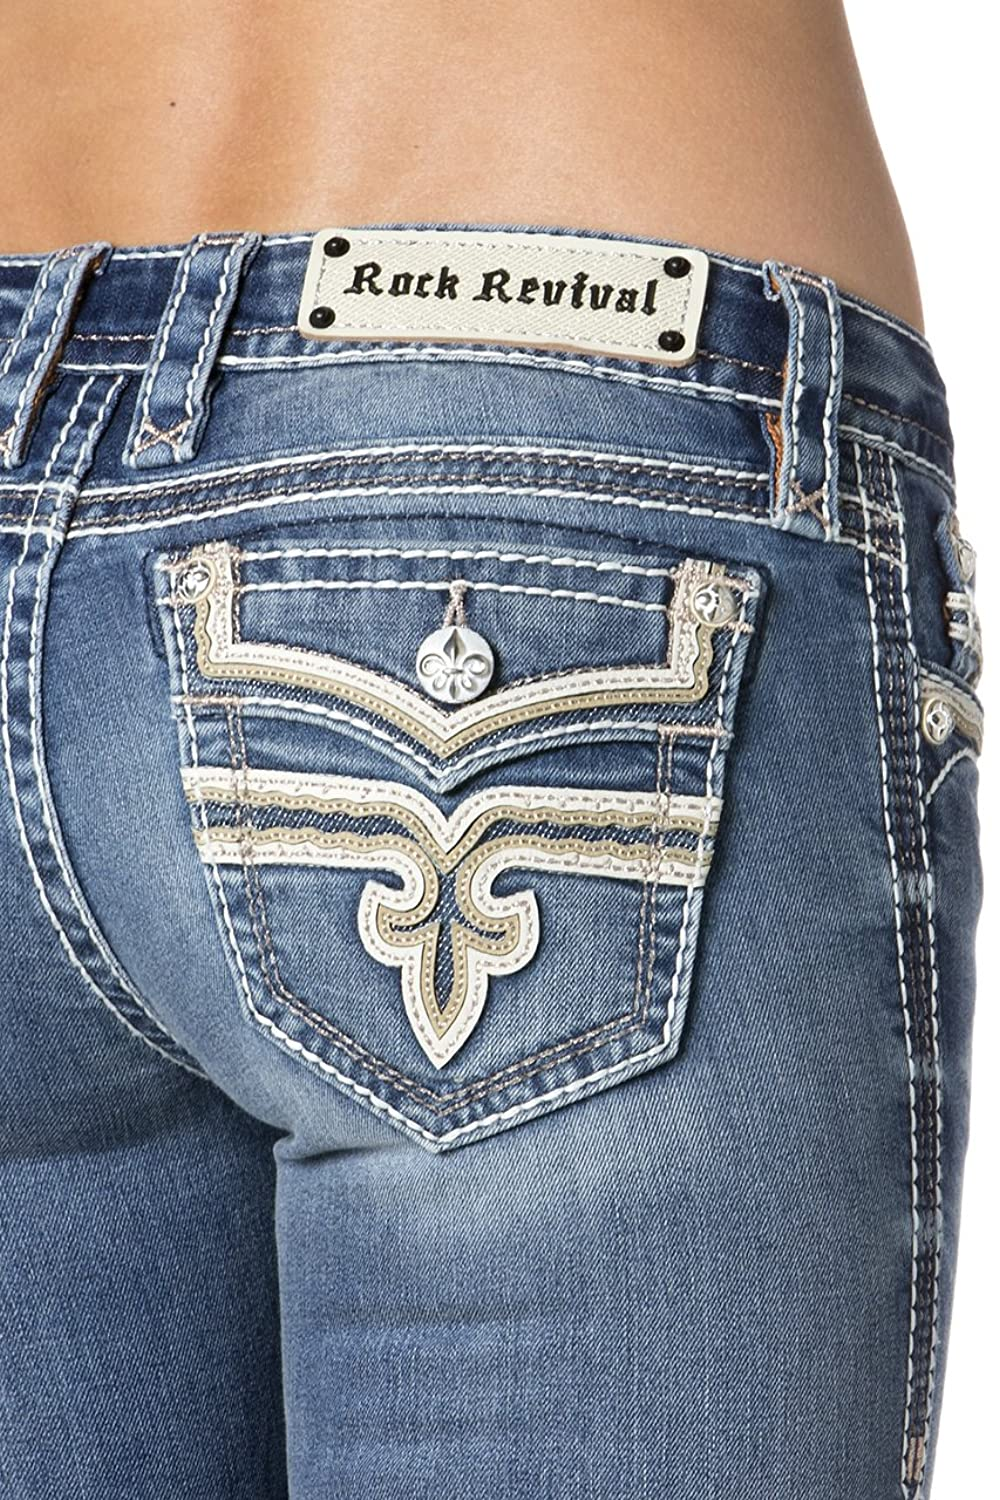 Rock Revival - Womens Juni B200 Bootcut Jeans, Size: 26, Color: Denim